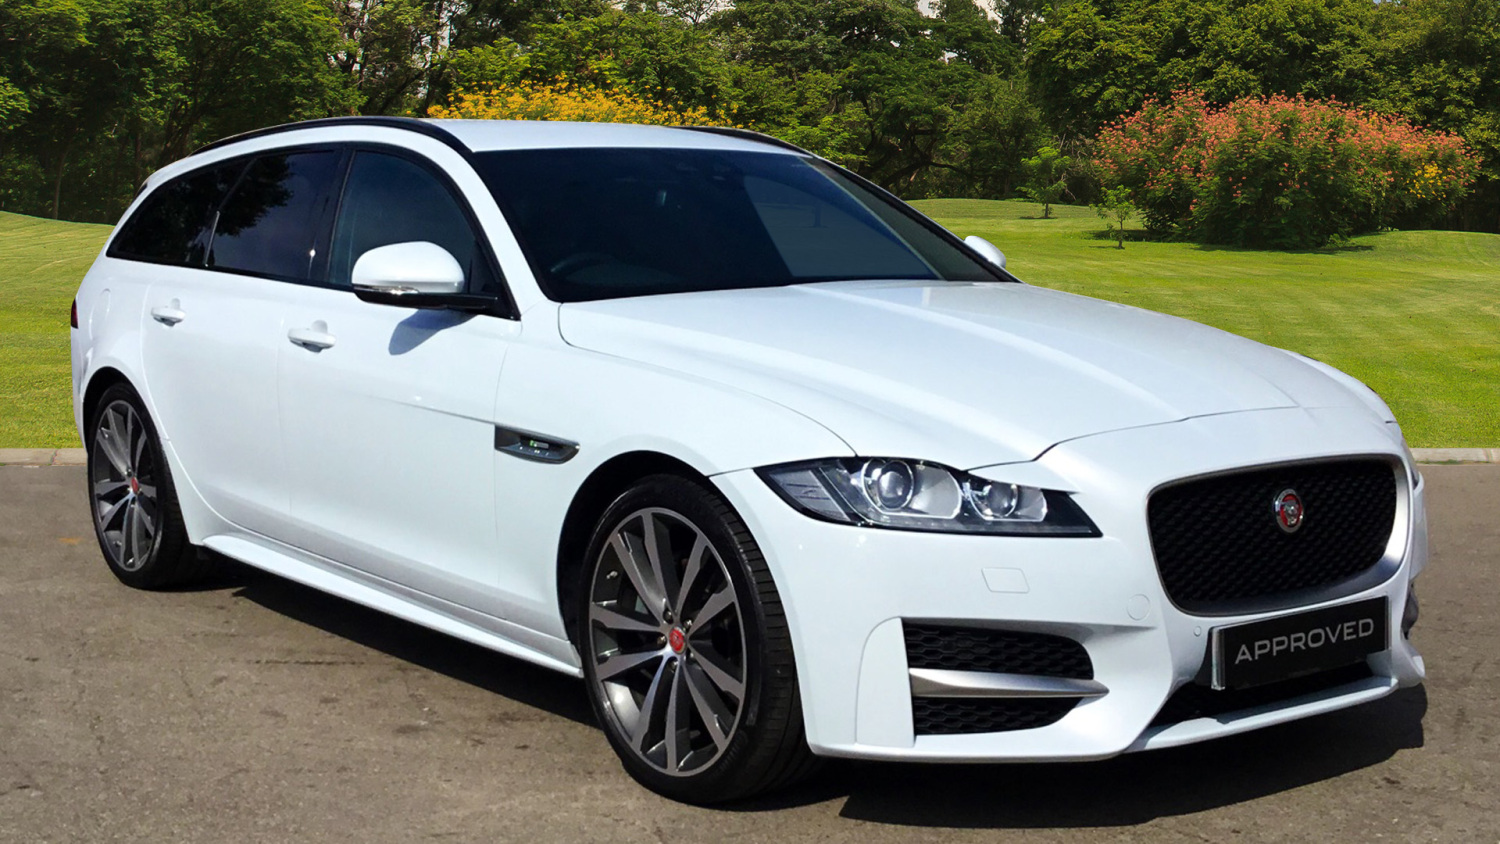 used jaguar xf 2 0d 180 r sport 5dr auto diesel estate for sale in scotland macklin motors. Black Bedroom Furniture Sets. Home Design Ideas